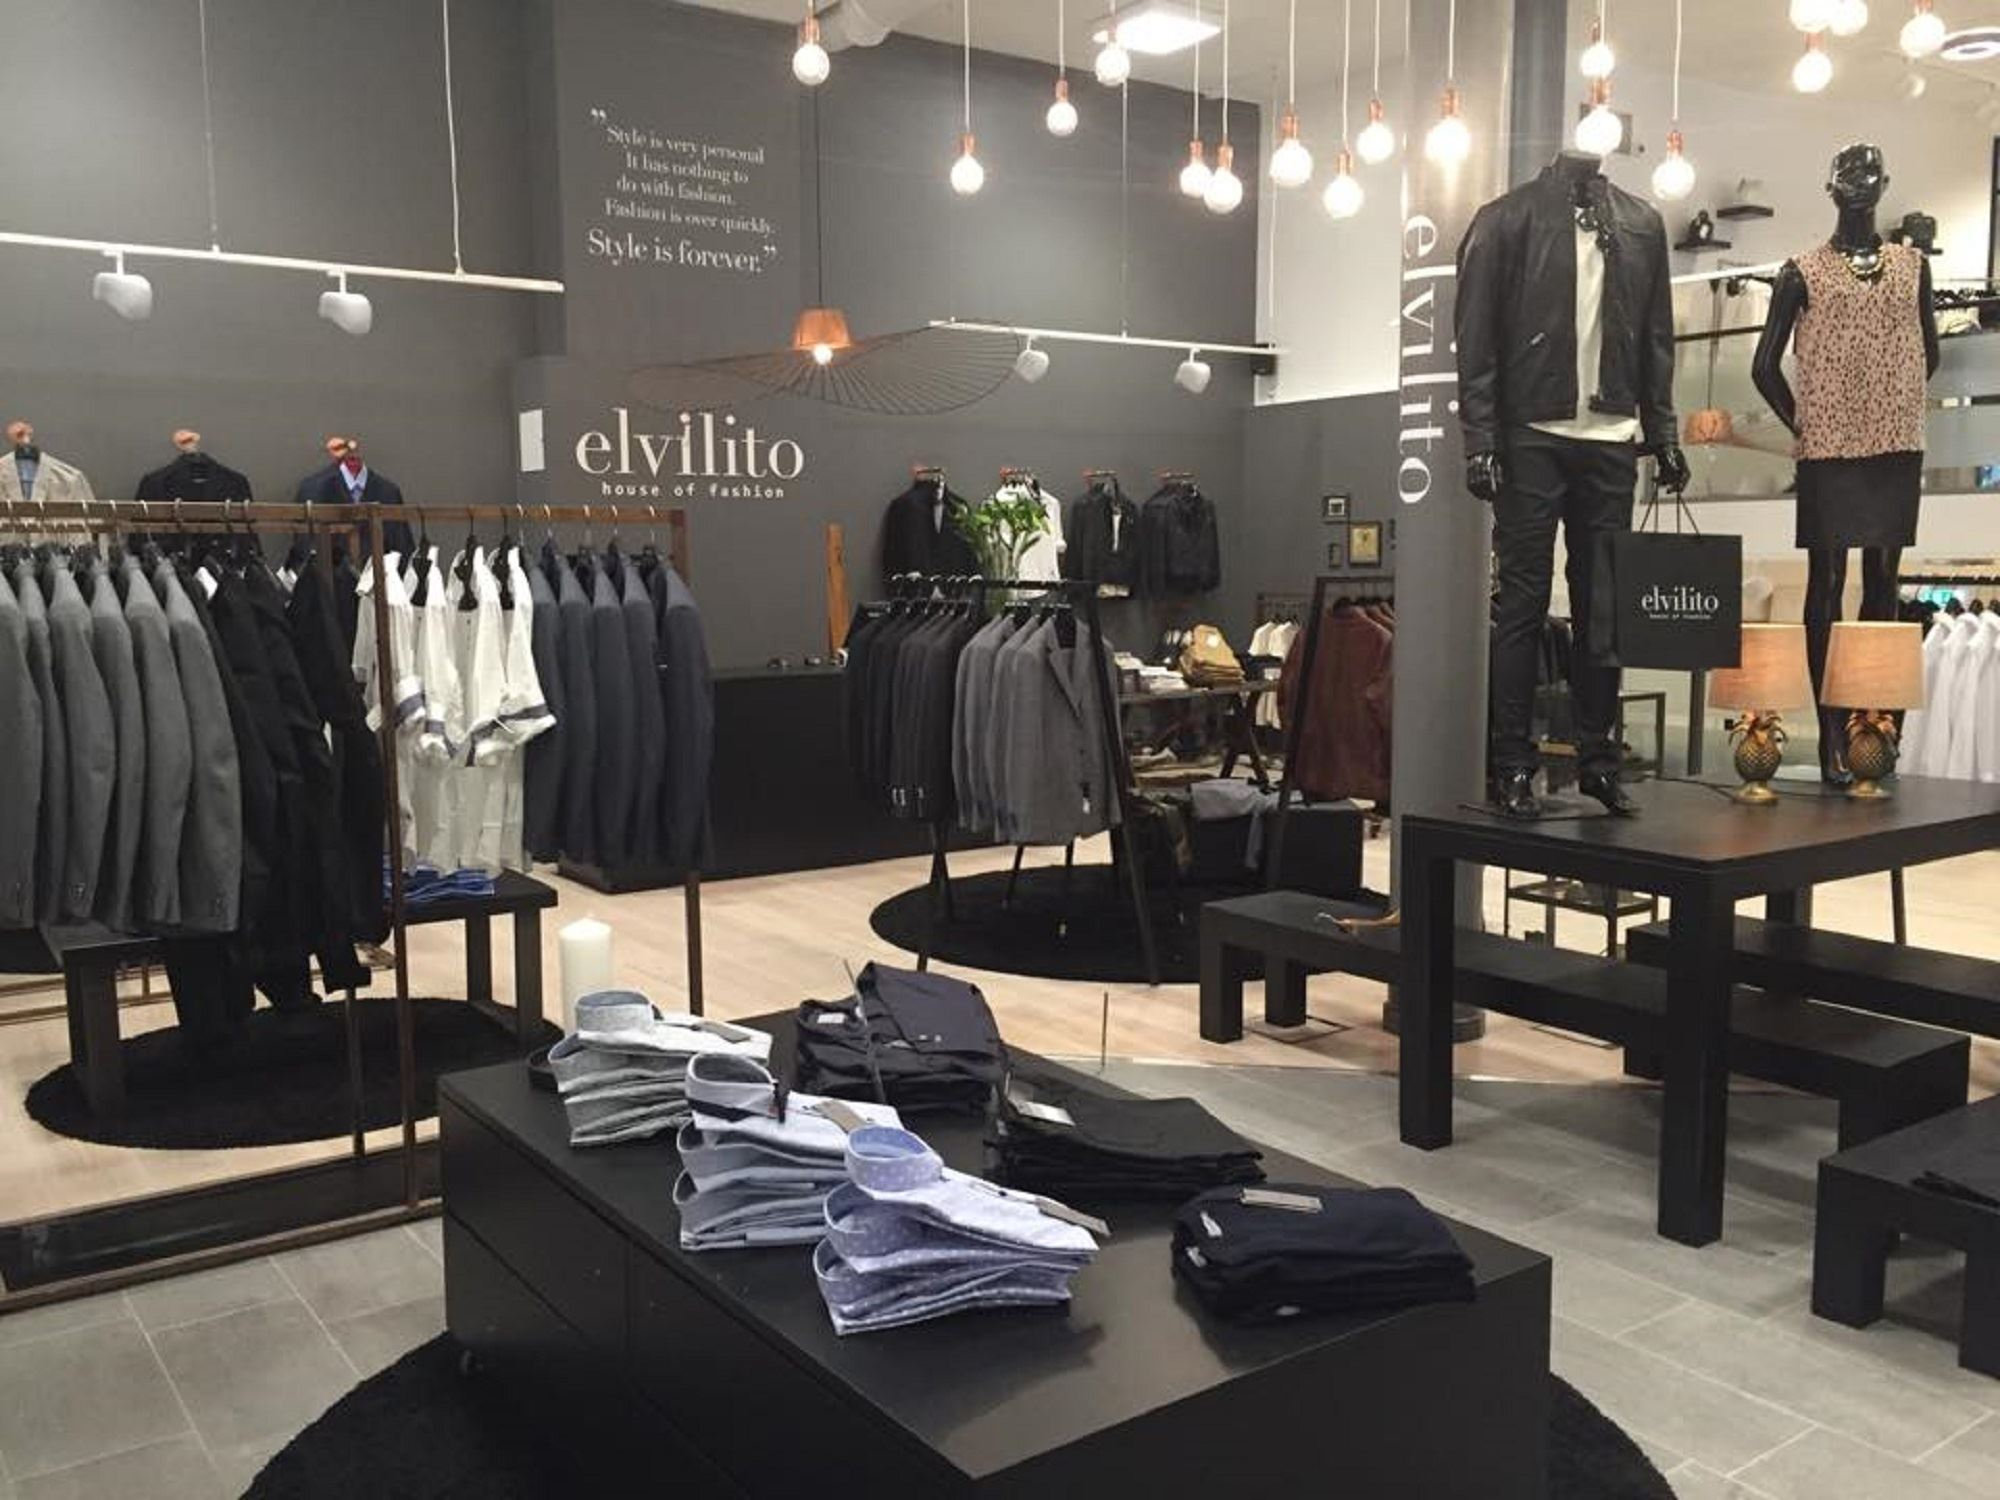 Elvilito - House of fashion